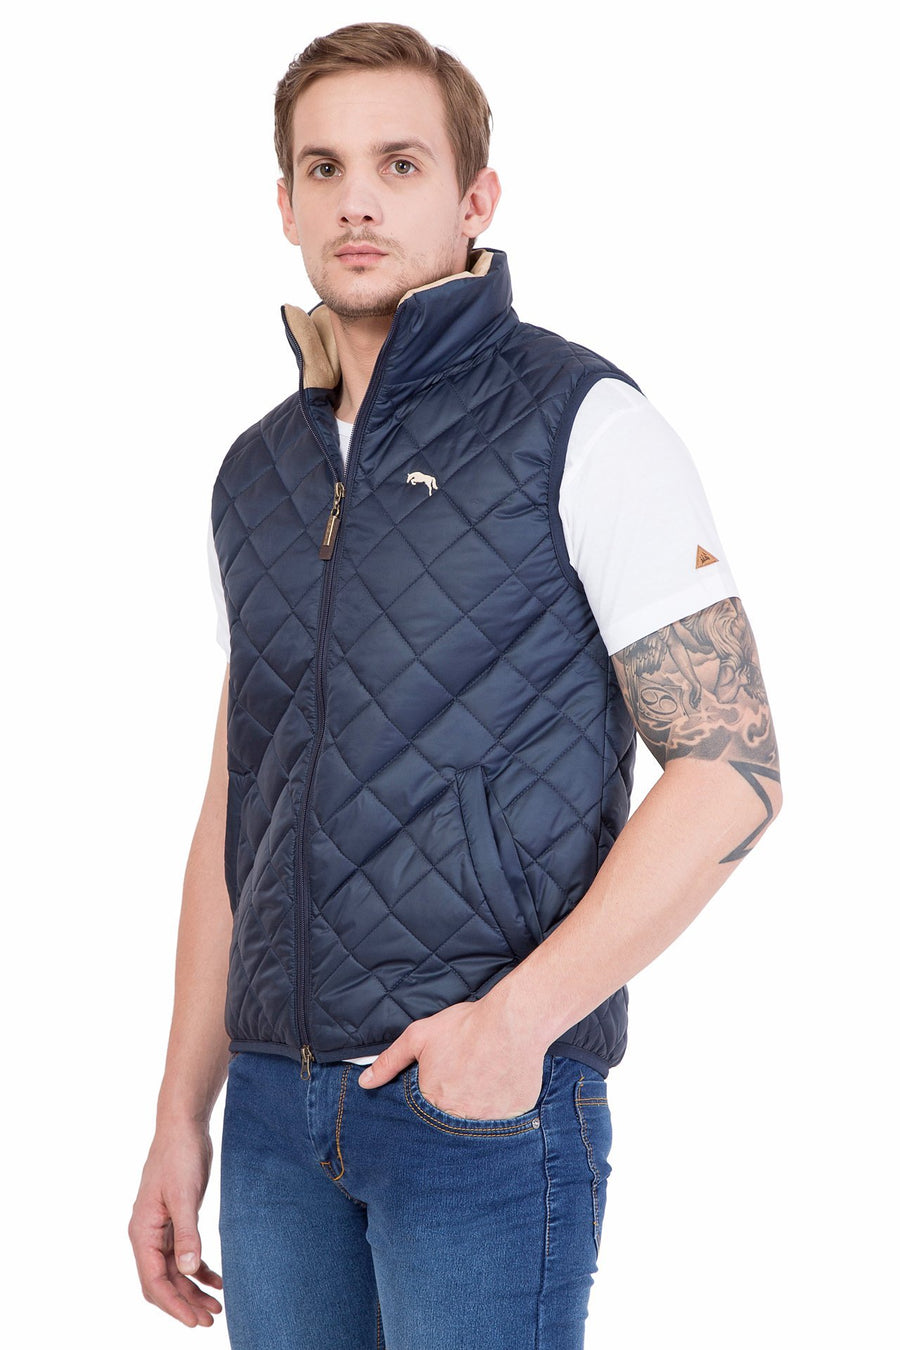 Men's Half Sleeve Polyester Jacket